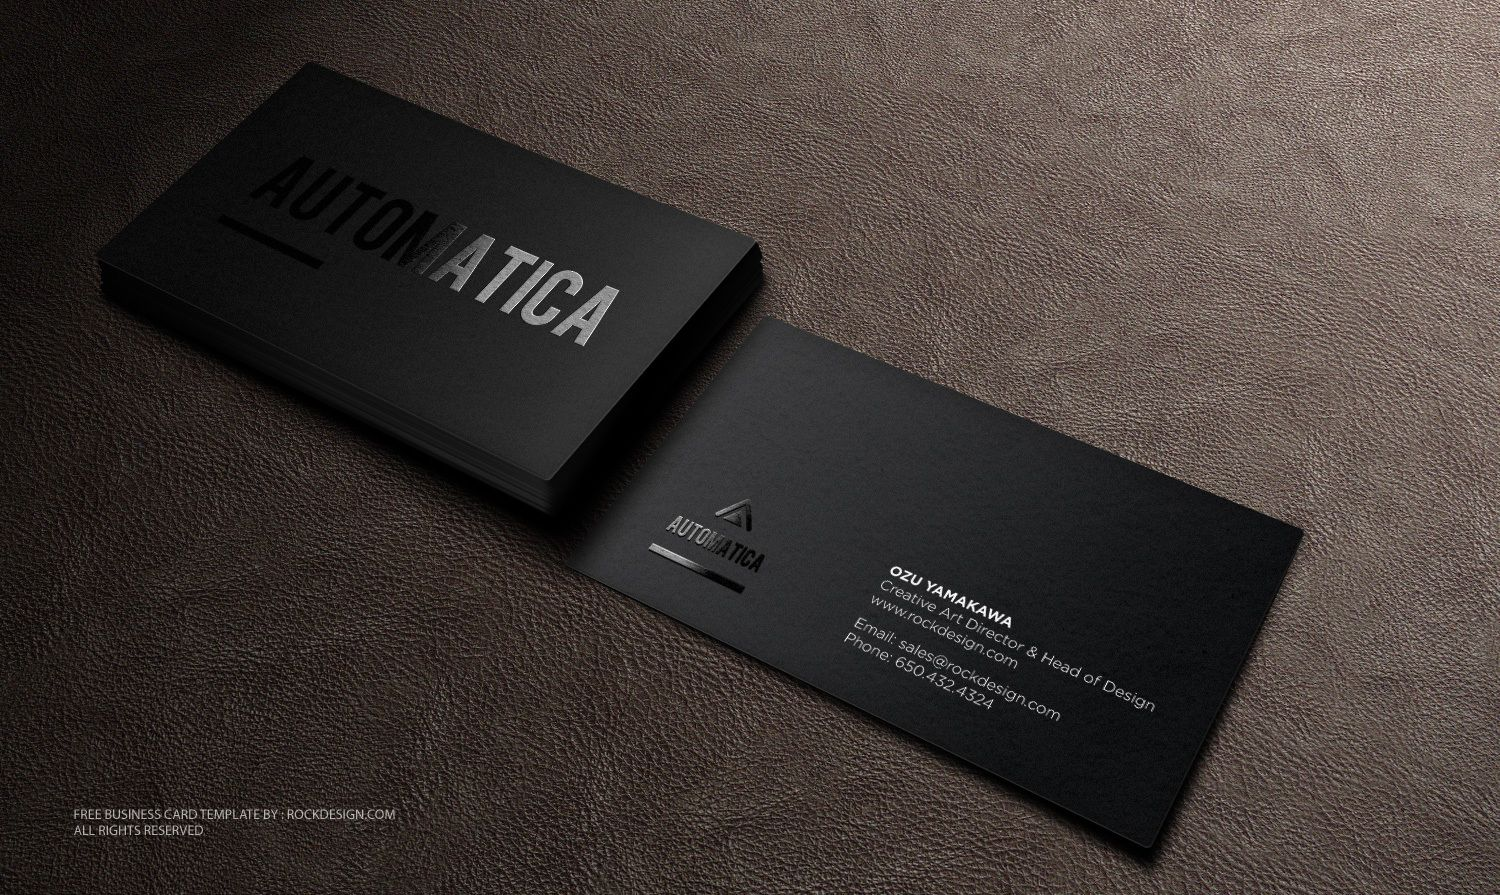 Black business card template download free design templates black business card template download free design templates friedricerecipe Gallery